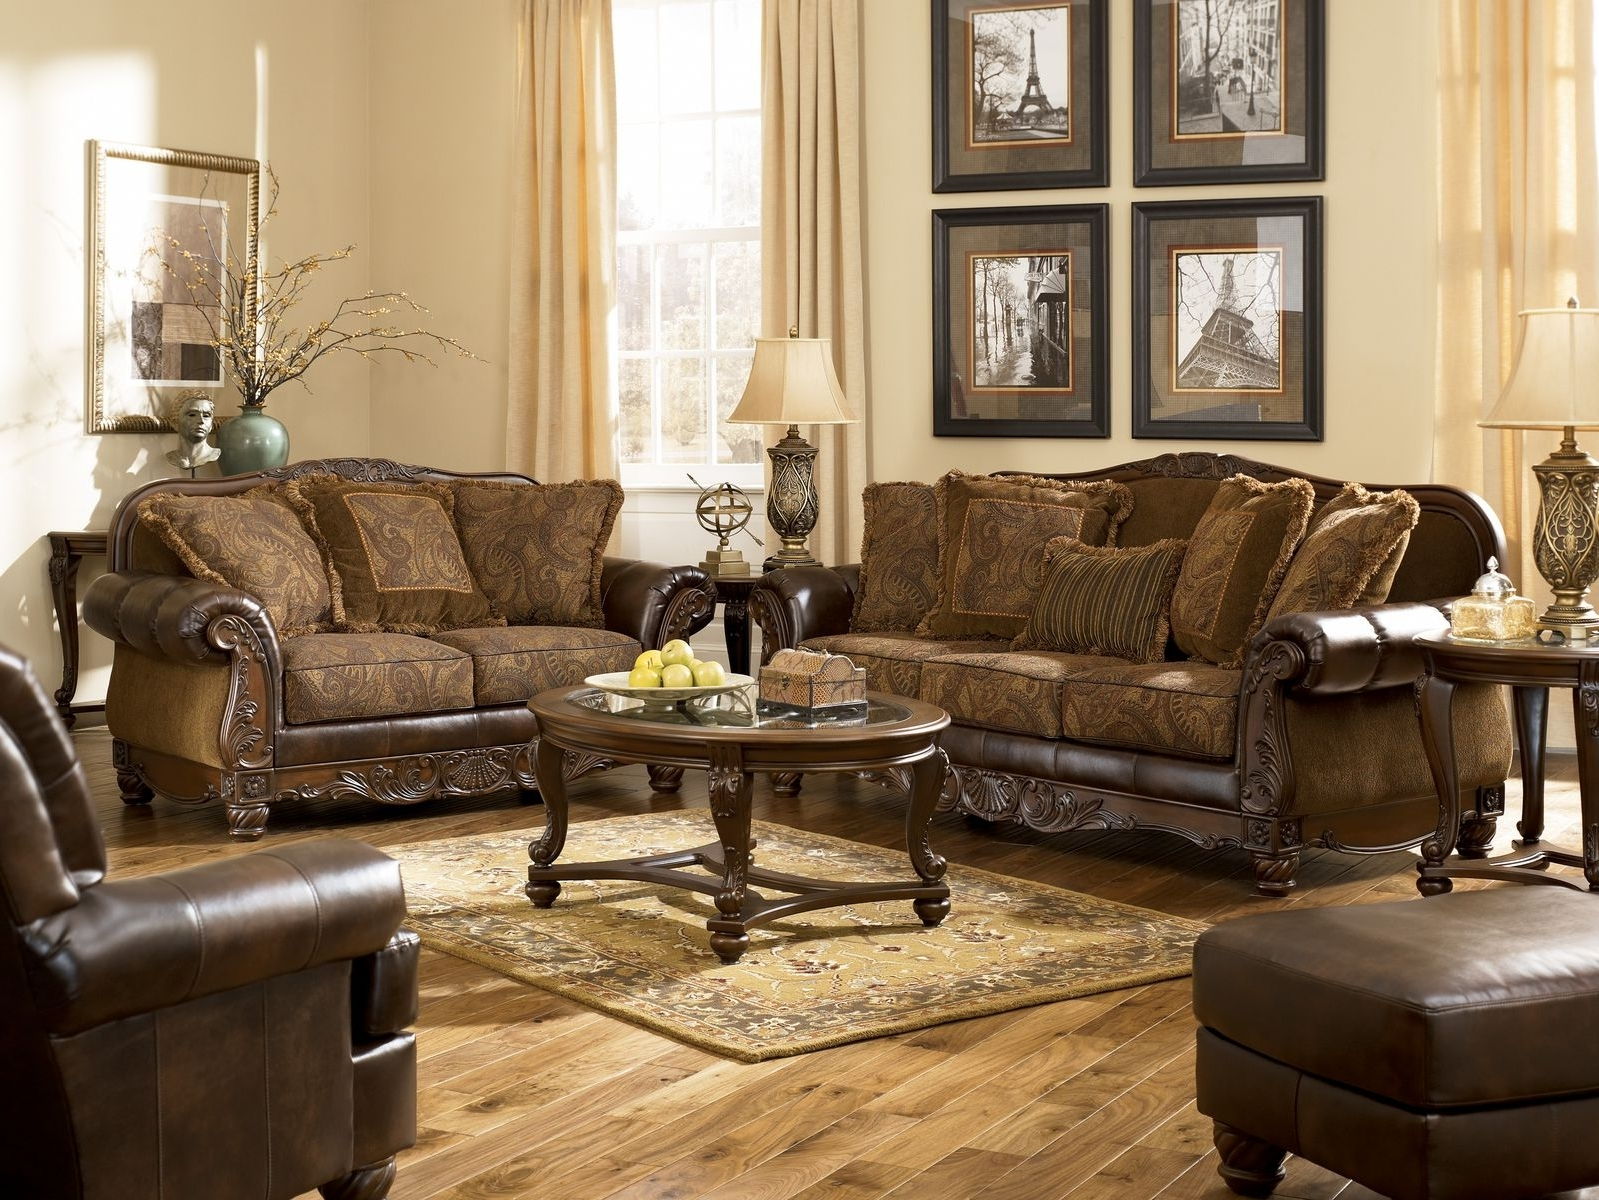 Traditional Sofas And Chairs Pertaining To Current Traditional Sofa Design Bringing Classical Vibe In Living Room (View 5 of 15)